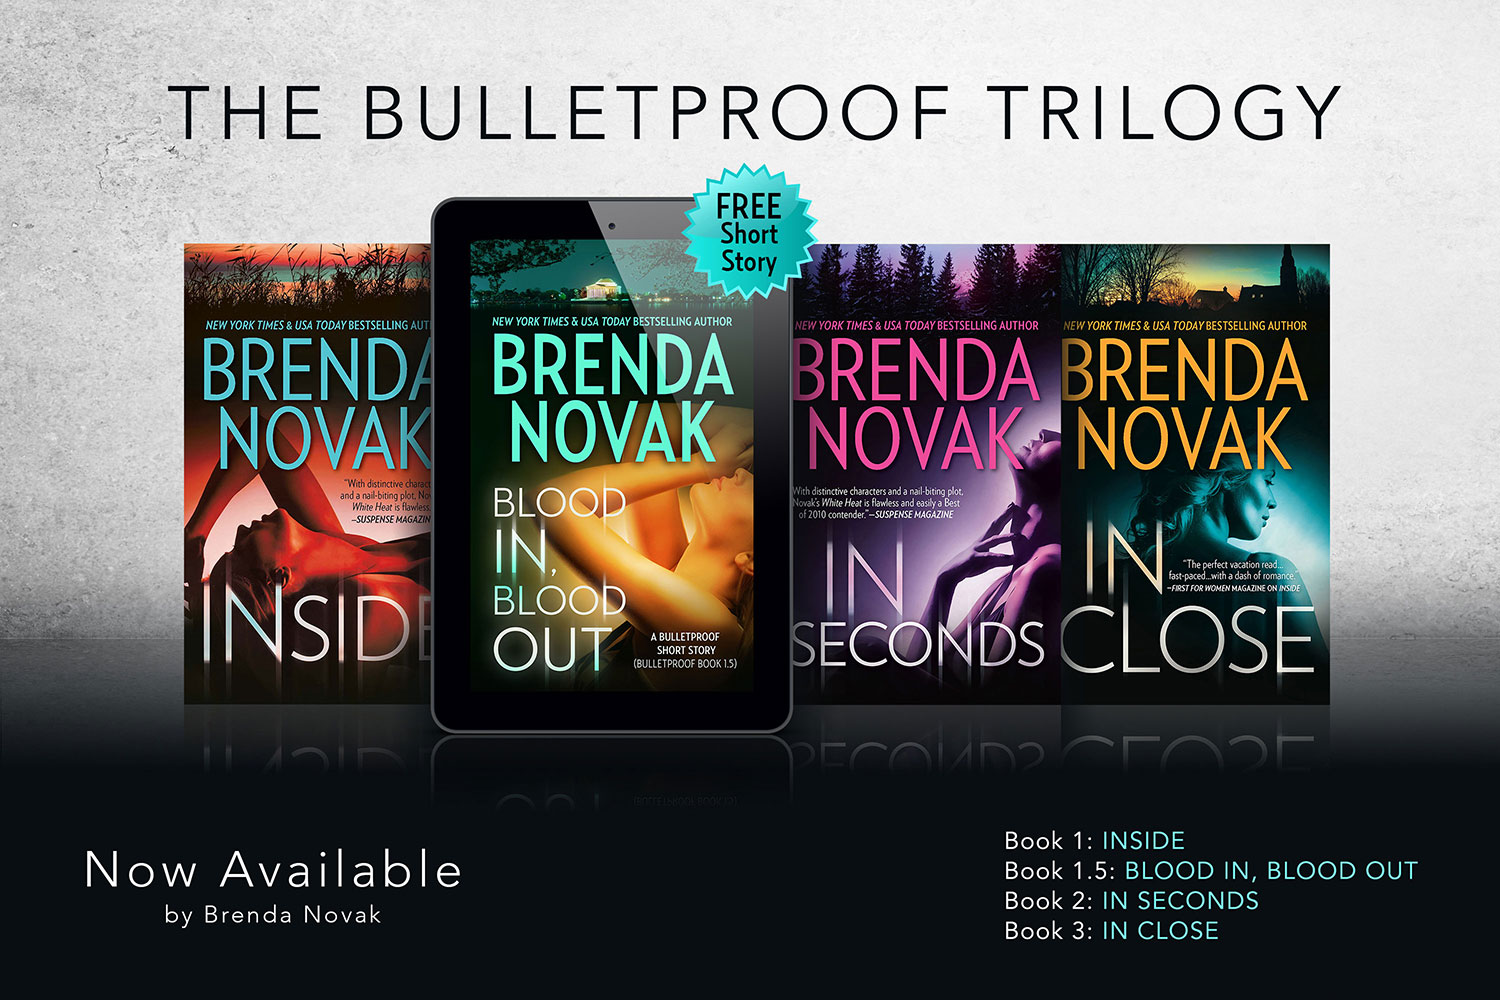 The Bulletproof Trilogy + 1 Free Short Story